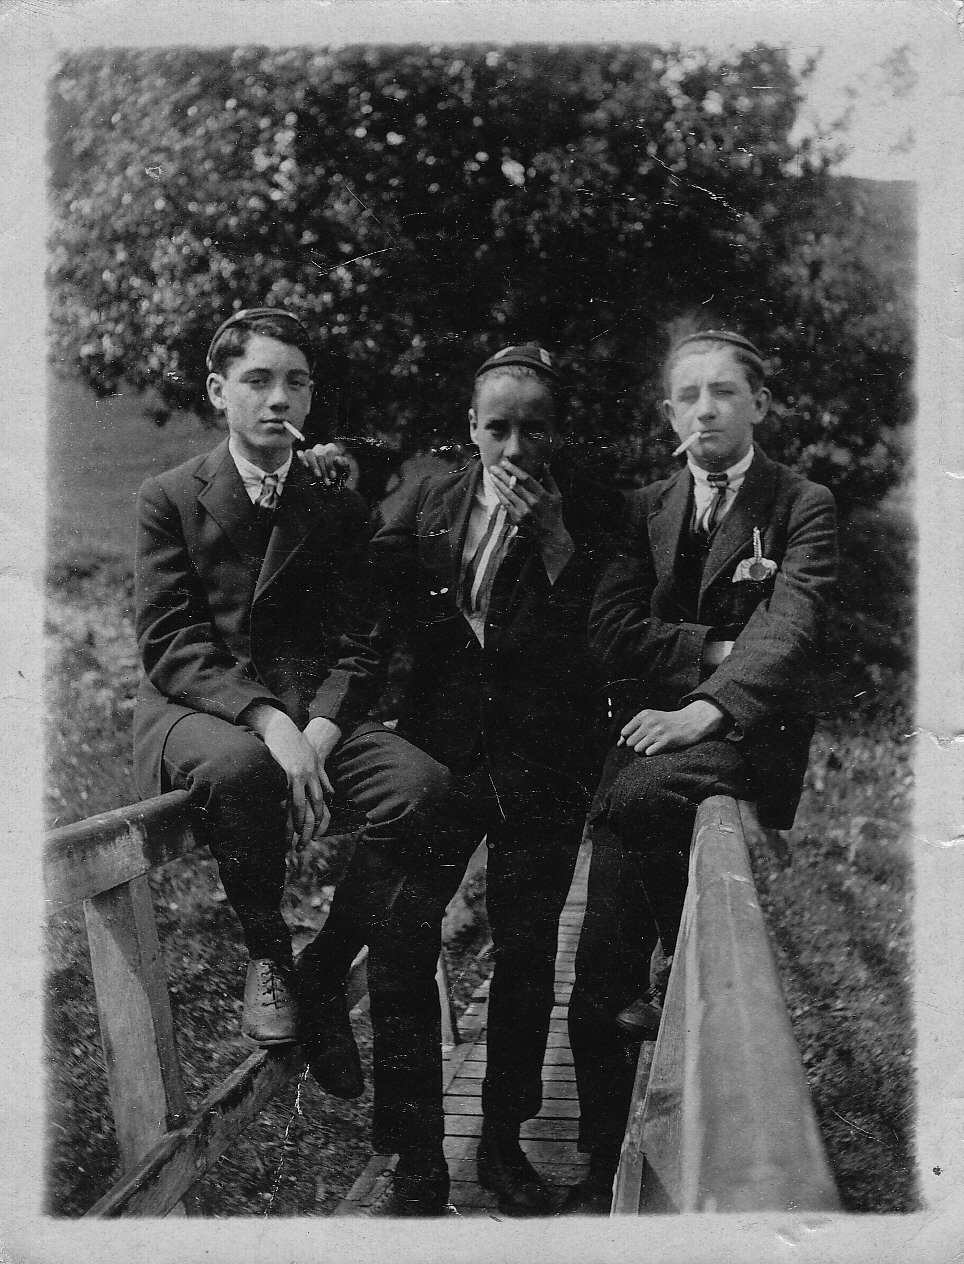 Three relatives (unknown) - seemingly up to no good...